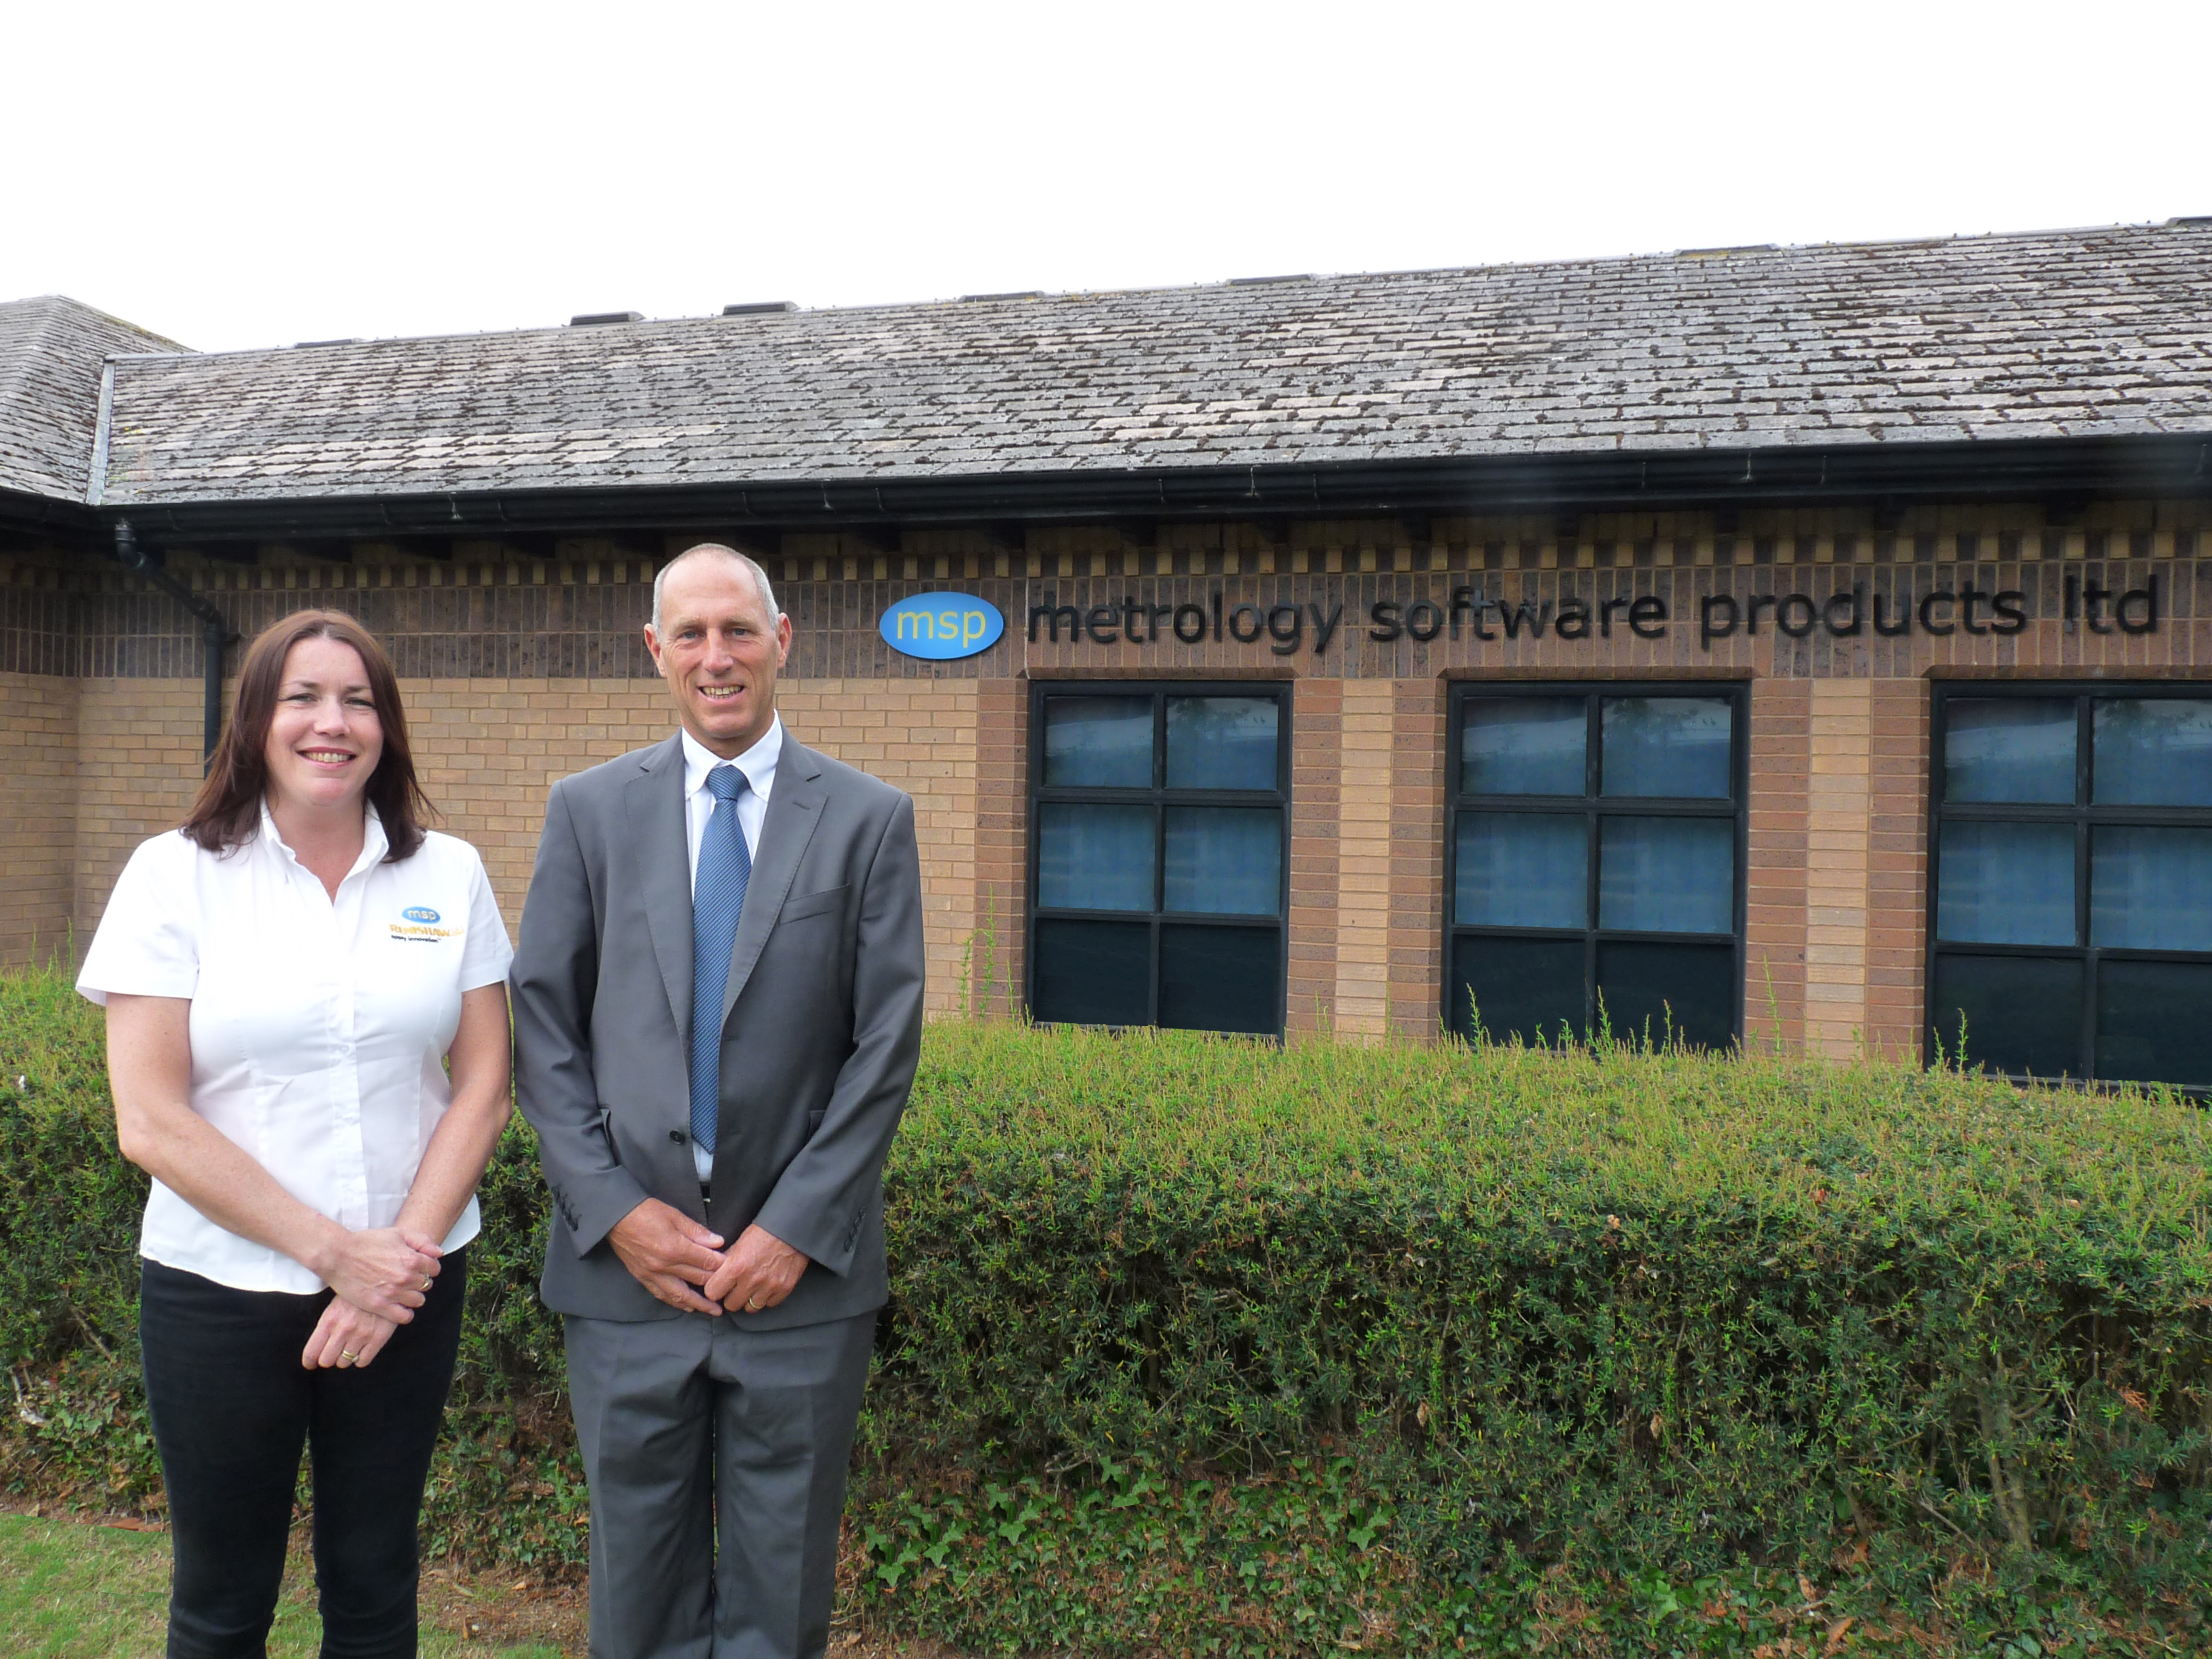 MSP's new appointments: Director of Development, Marianne Whitfield and UK Technical Account Manager, Keith Langford